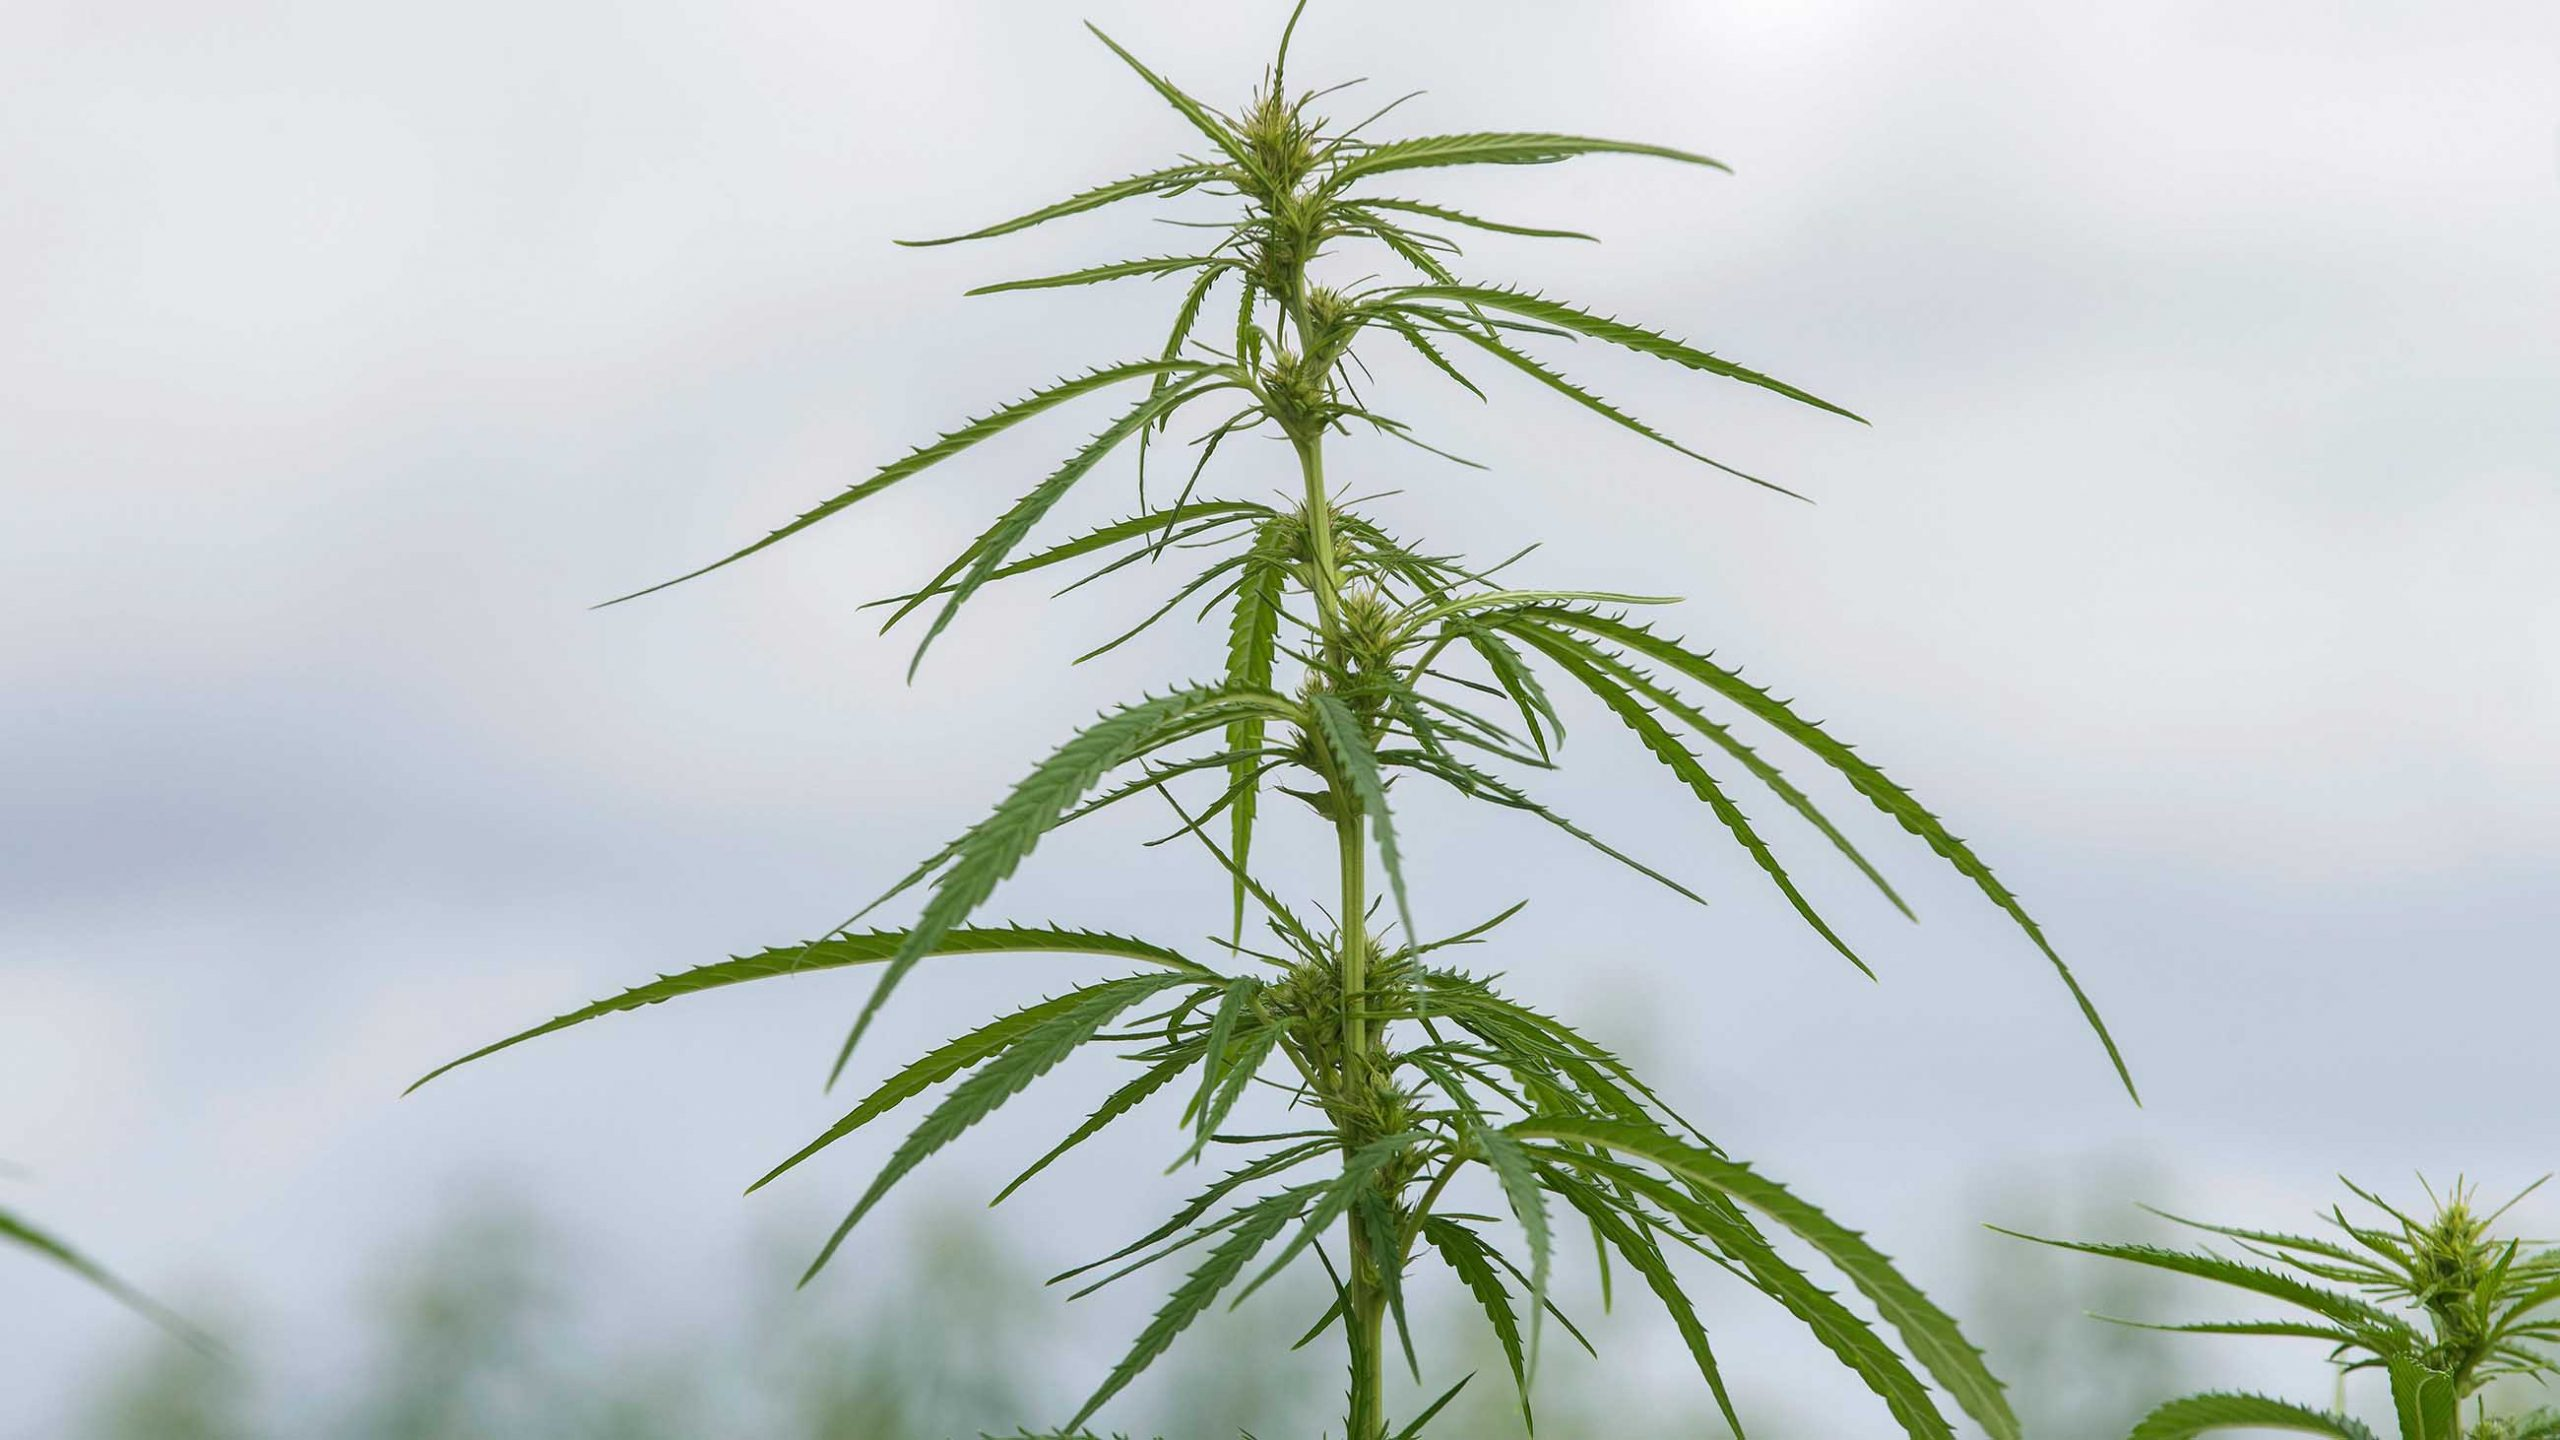 drinks at your local pub may come from hemp